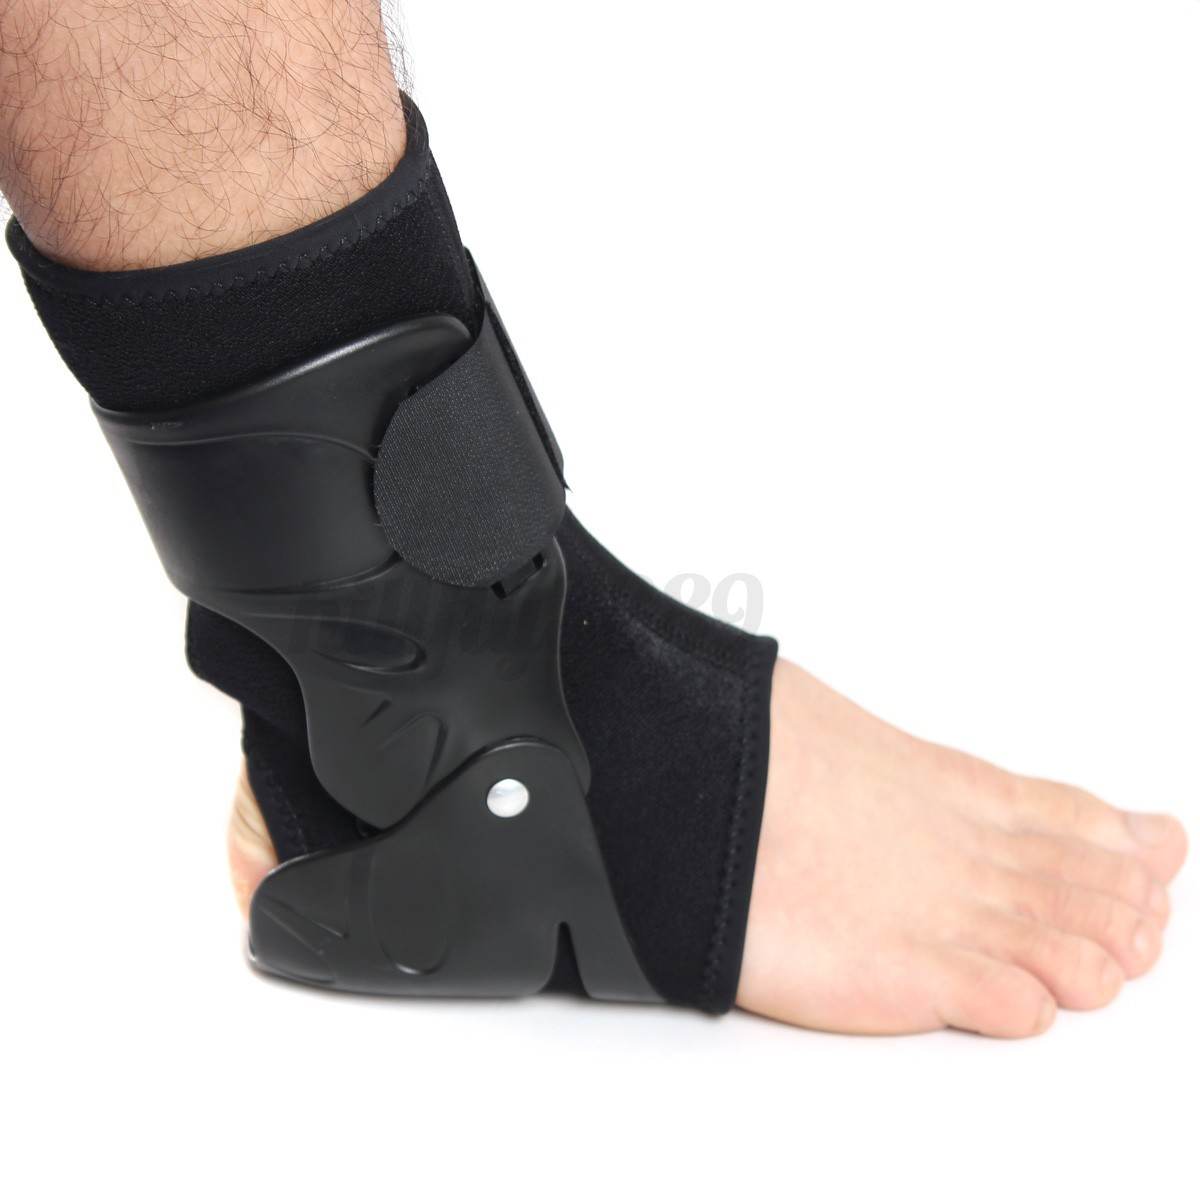 Medical Ankle Support Brace Foot Guard Sprains Tendon